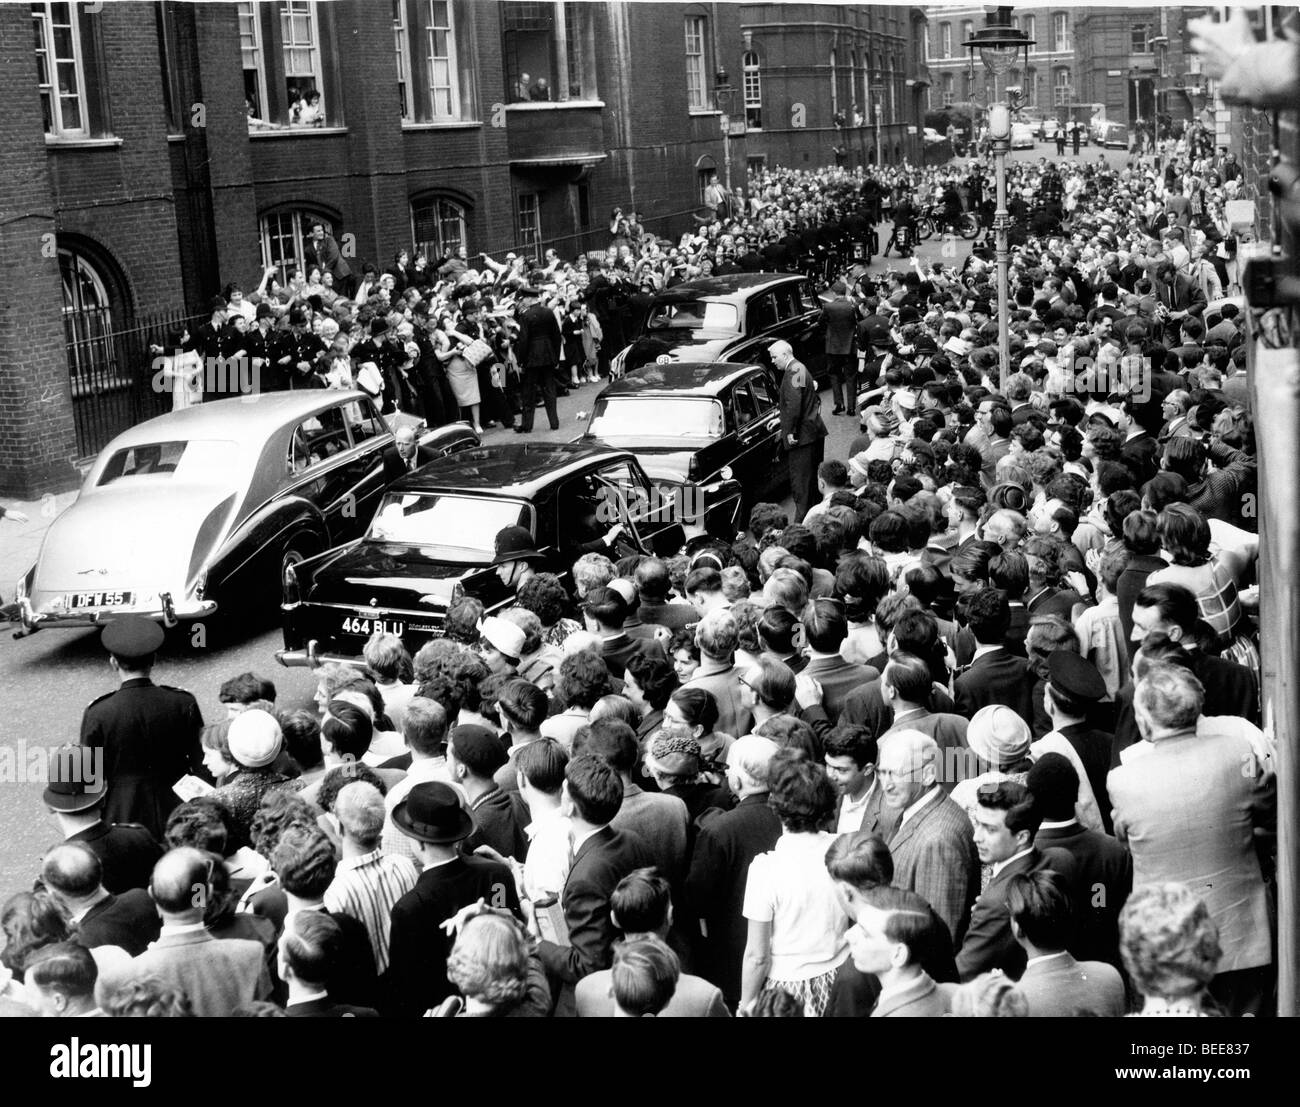 A crowd gathers to see US President John F Kennedy during a visit to London for the christening of his niece in Stock Photo